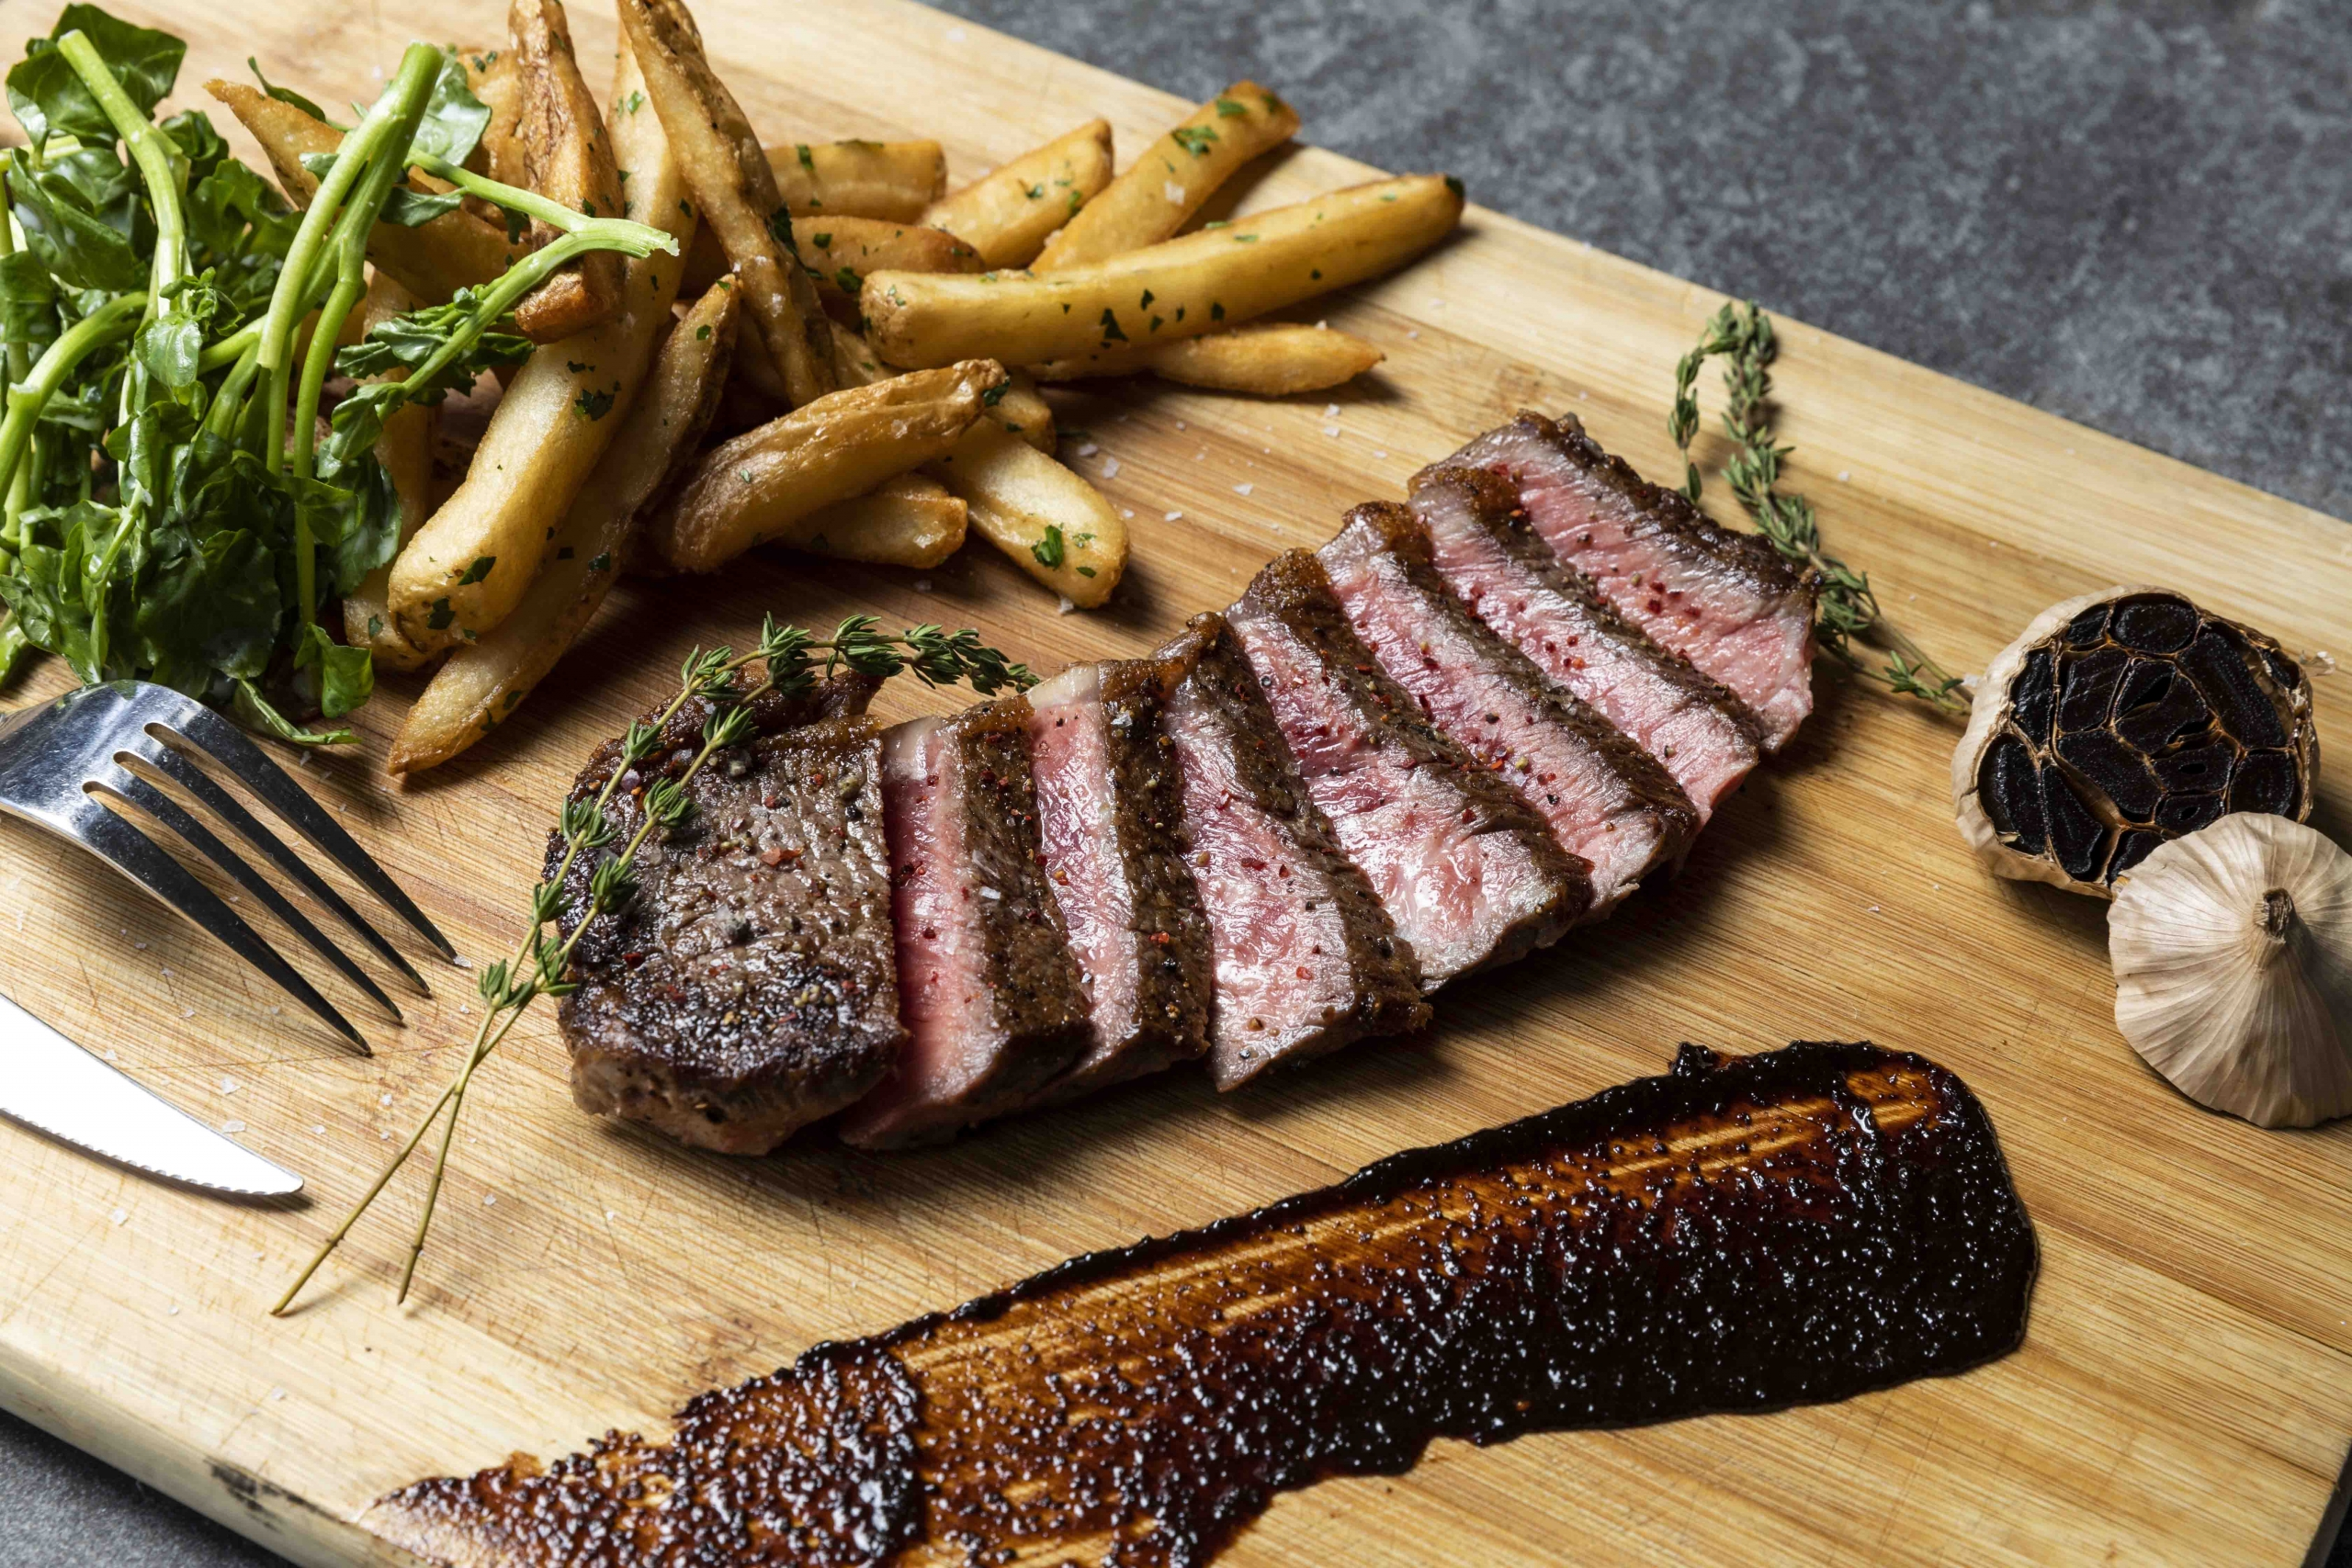 A cut of steak, fries and garlic on a wooden cutting board.